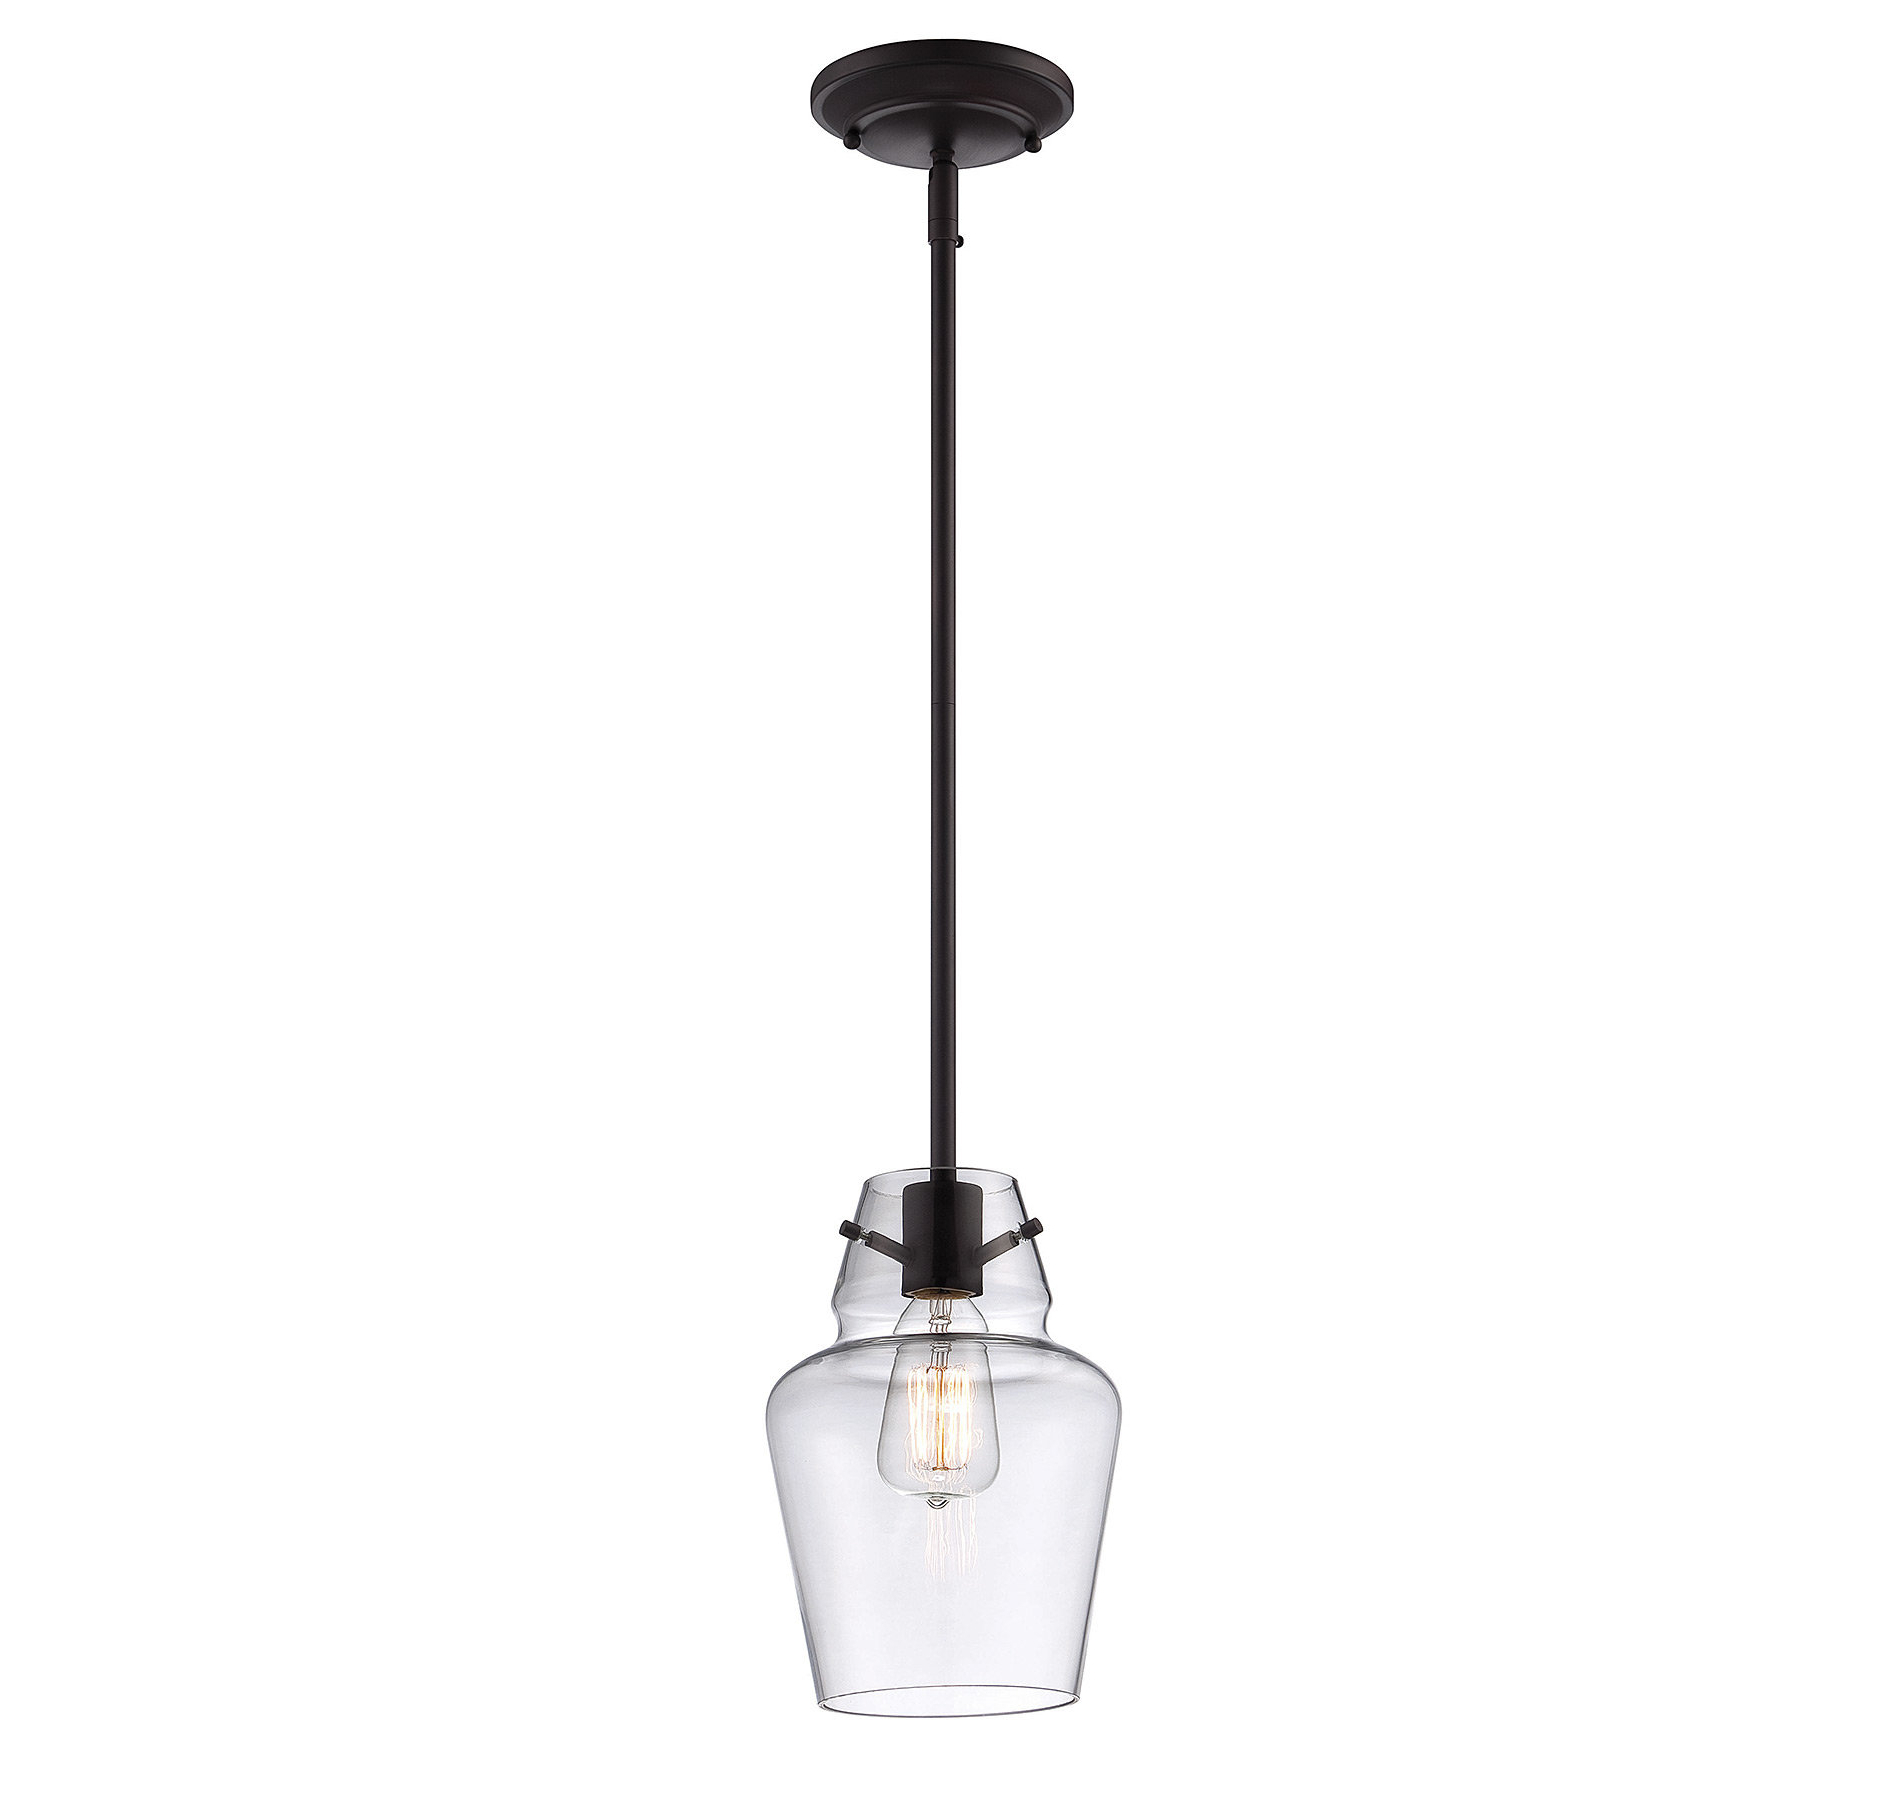 Roslindale 1 Light Single Bell Pendant With Regard To Most Recently Released Sue 1 Light Single Jar Pendants (View 12 of 20)